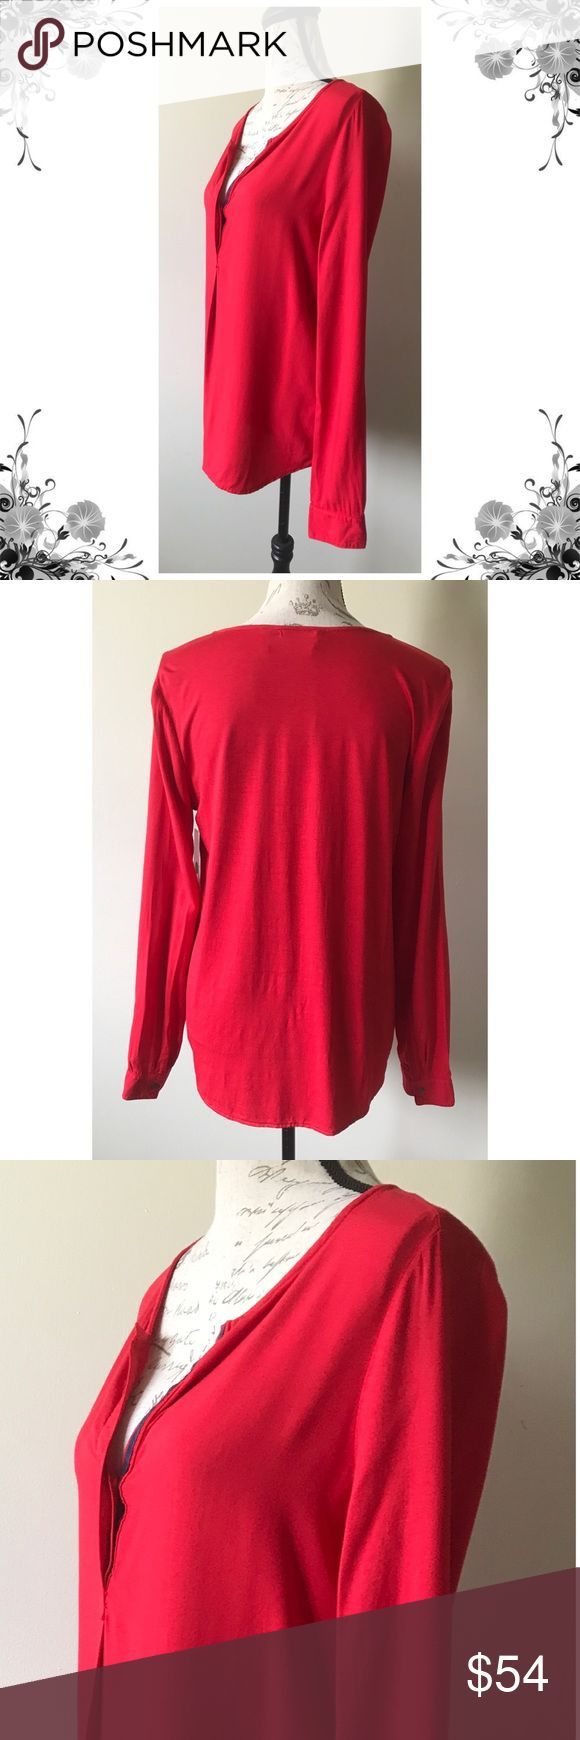 {Three Dots} Vibrant Red Blouse Measurements coming soon! Viscose/Spandex material. Gorgeous bright red! Bundle for discounts! Thank you for shopping my closet! Bin Three Dots Tops Blouses